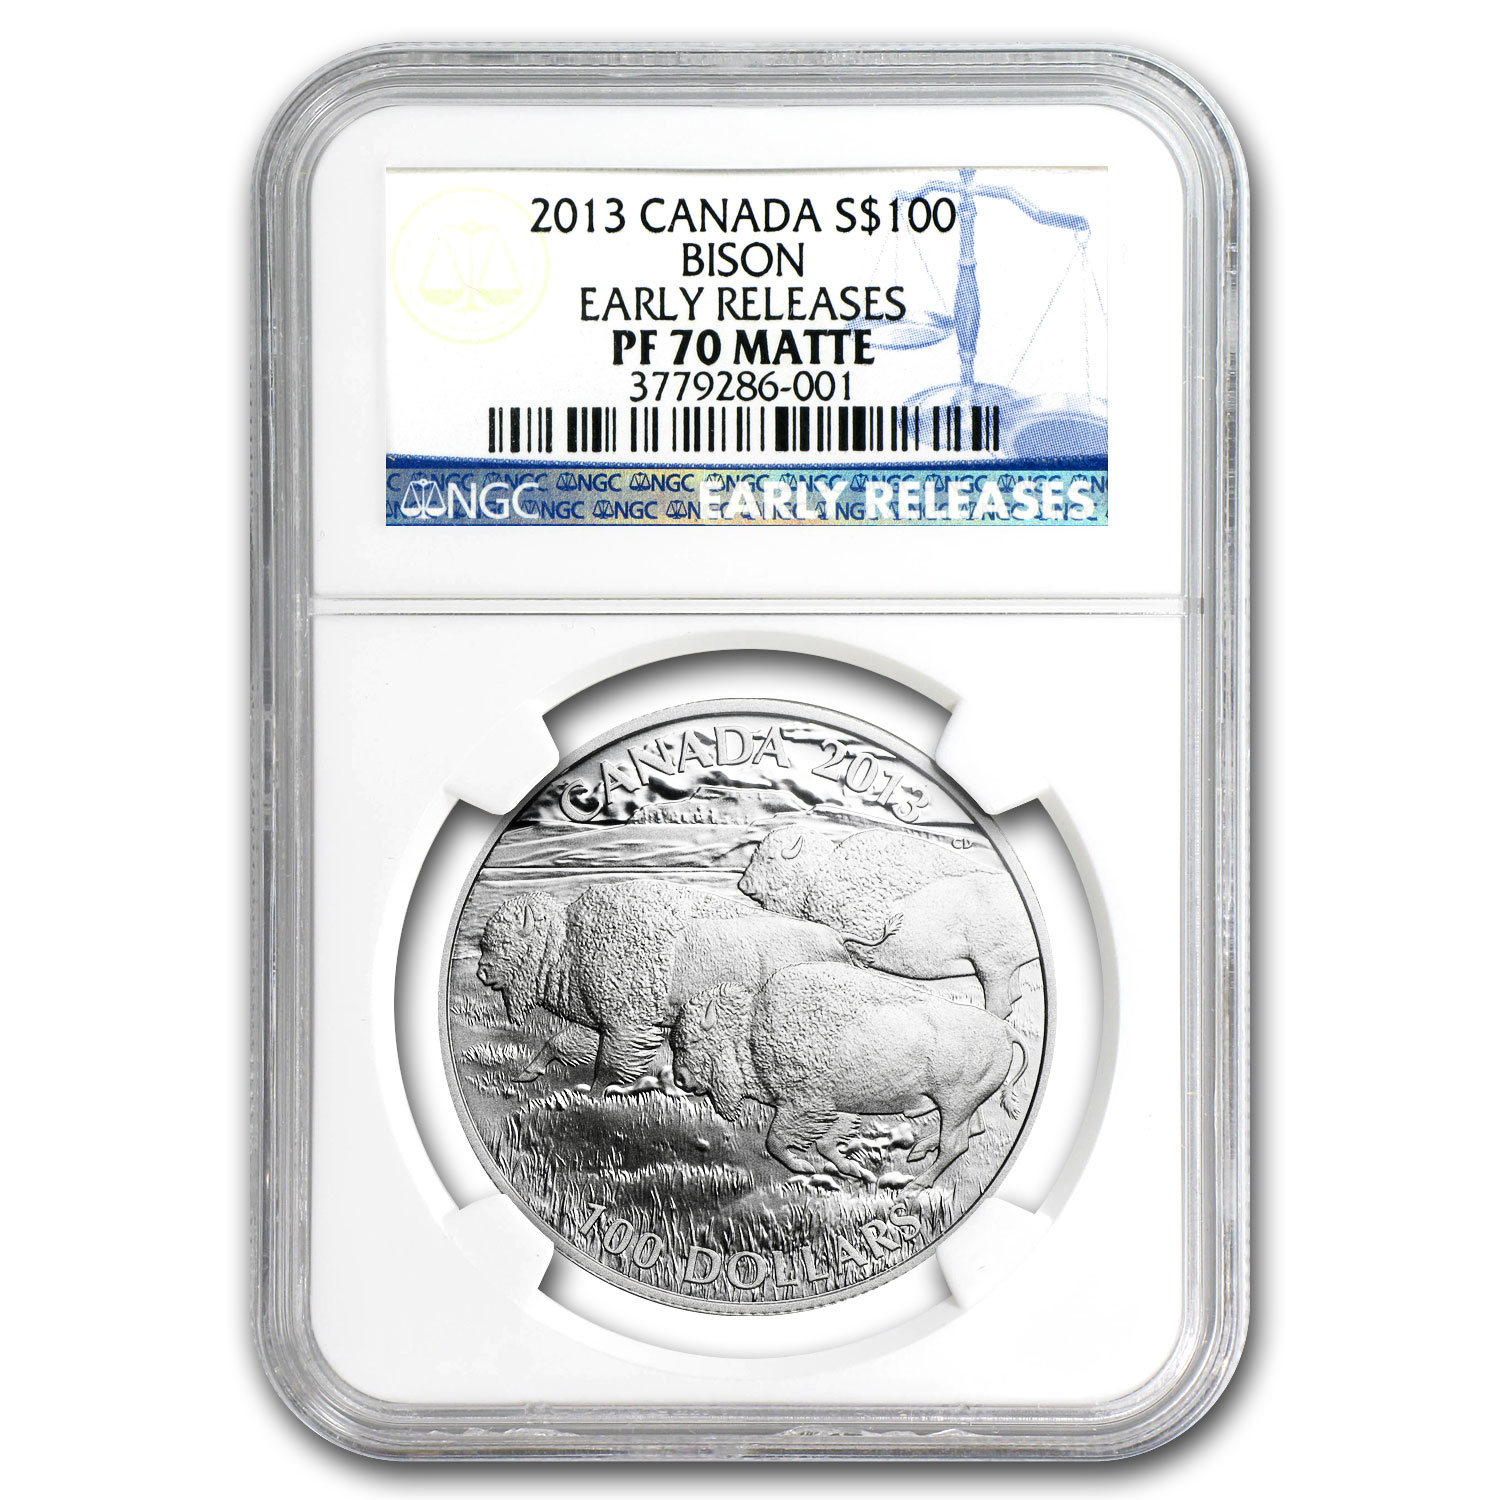 2013 Canada 1 oz Silver $100 Bison PF-70 Matte NGC (ER)